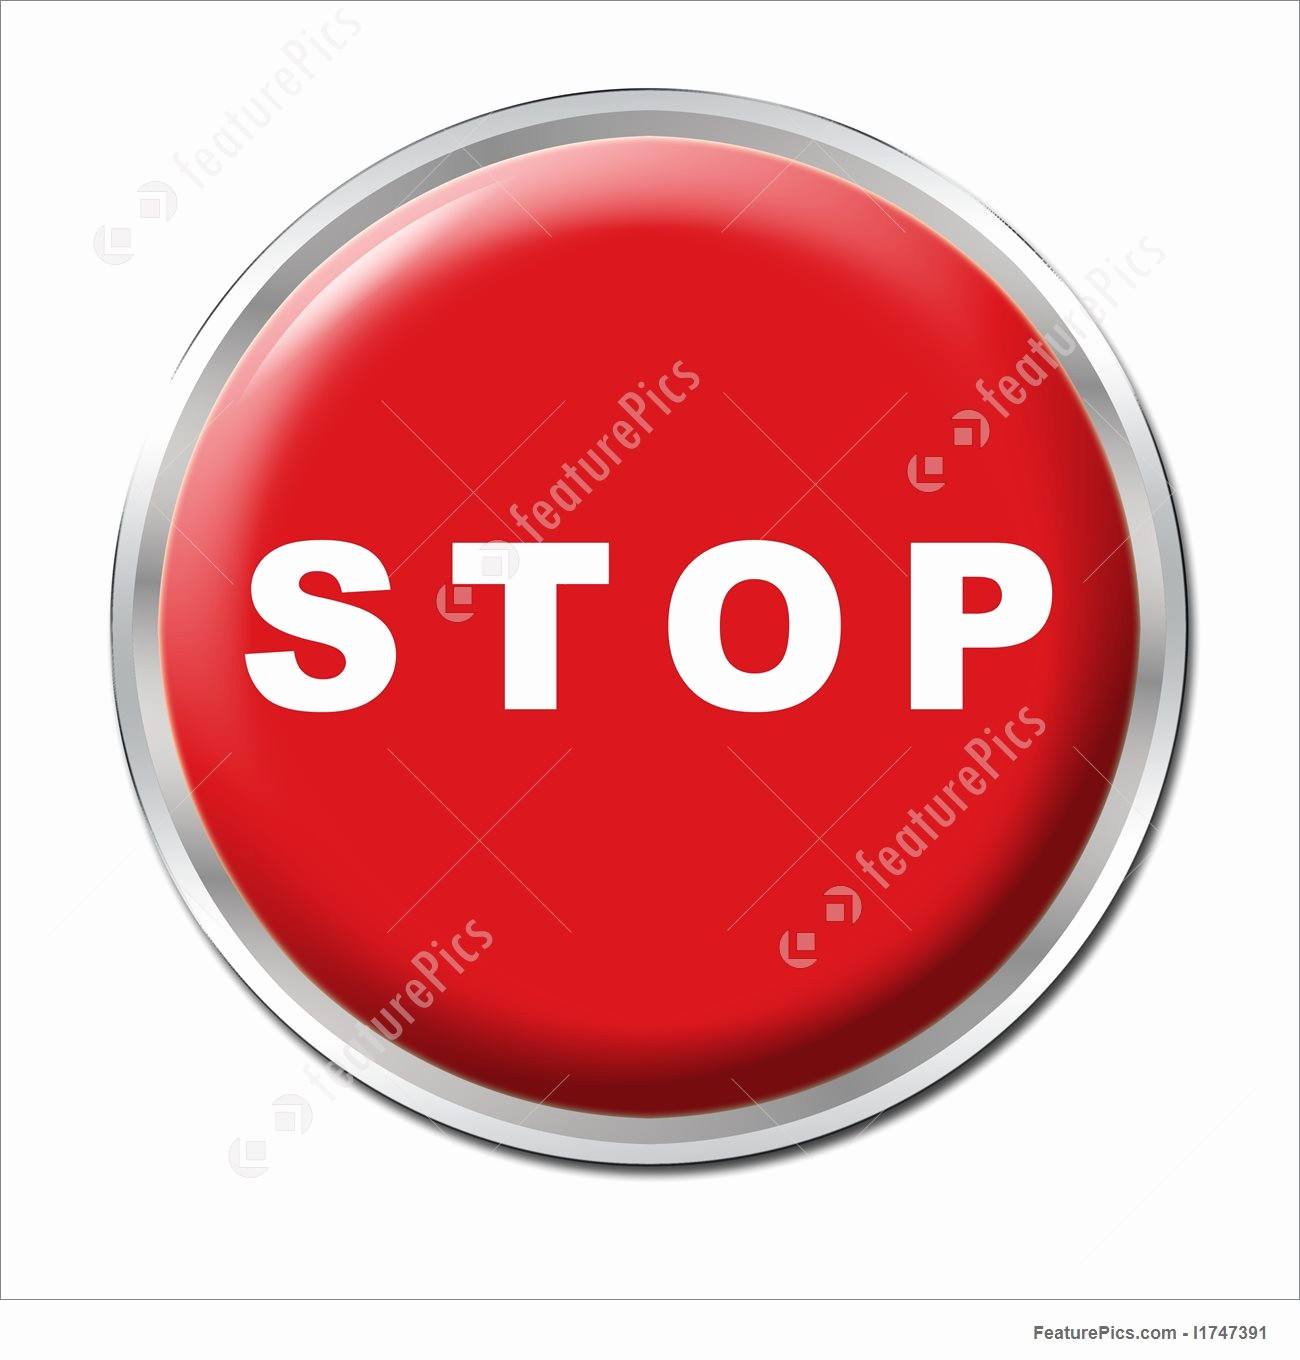 Stop Sign Template Microsoft Word Best Of Templates Stop button Stock Illustration I at